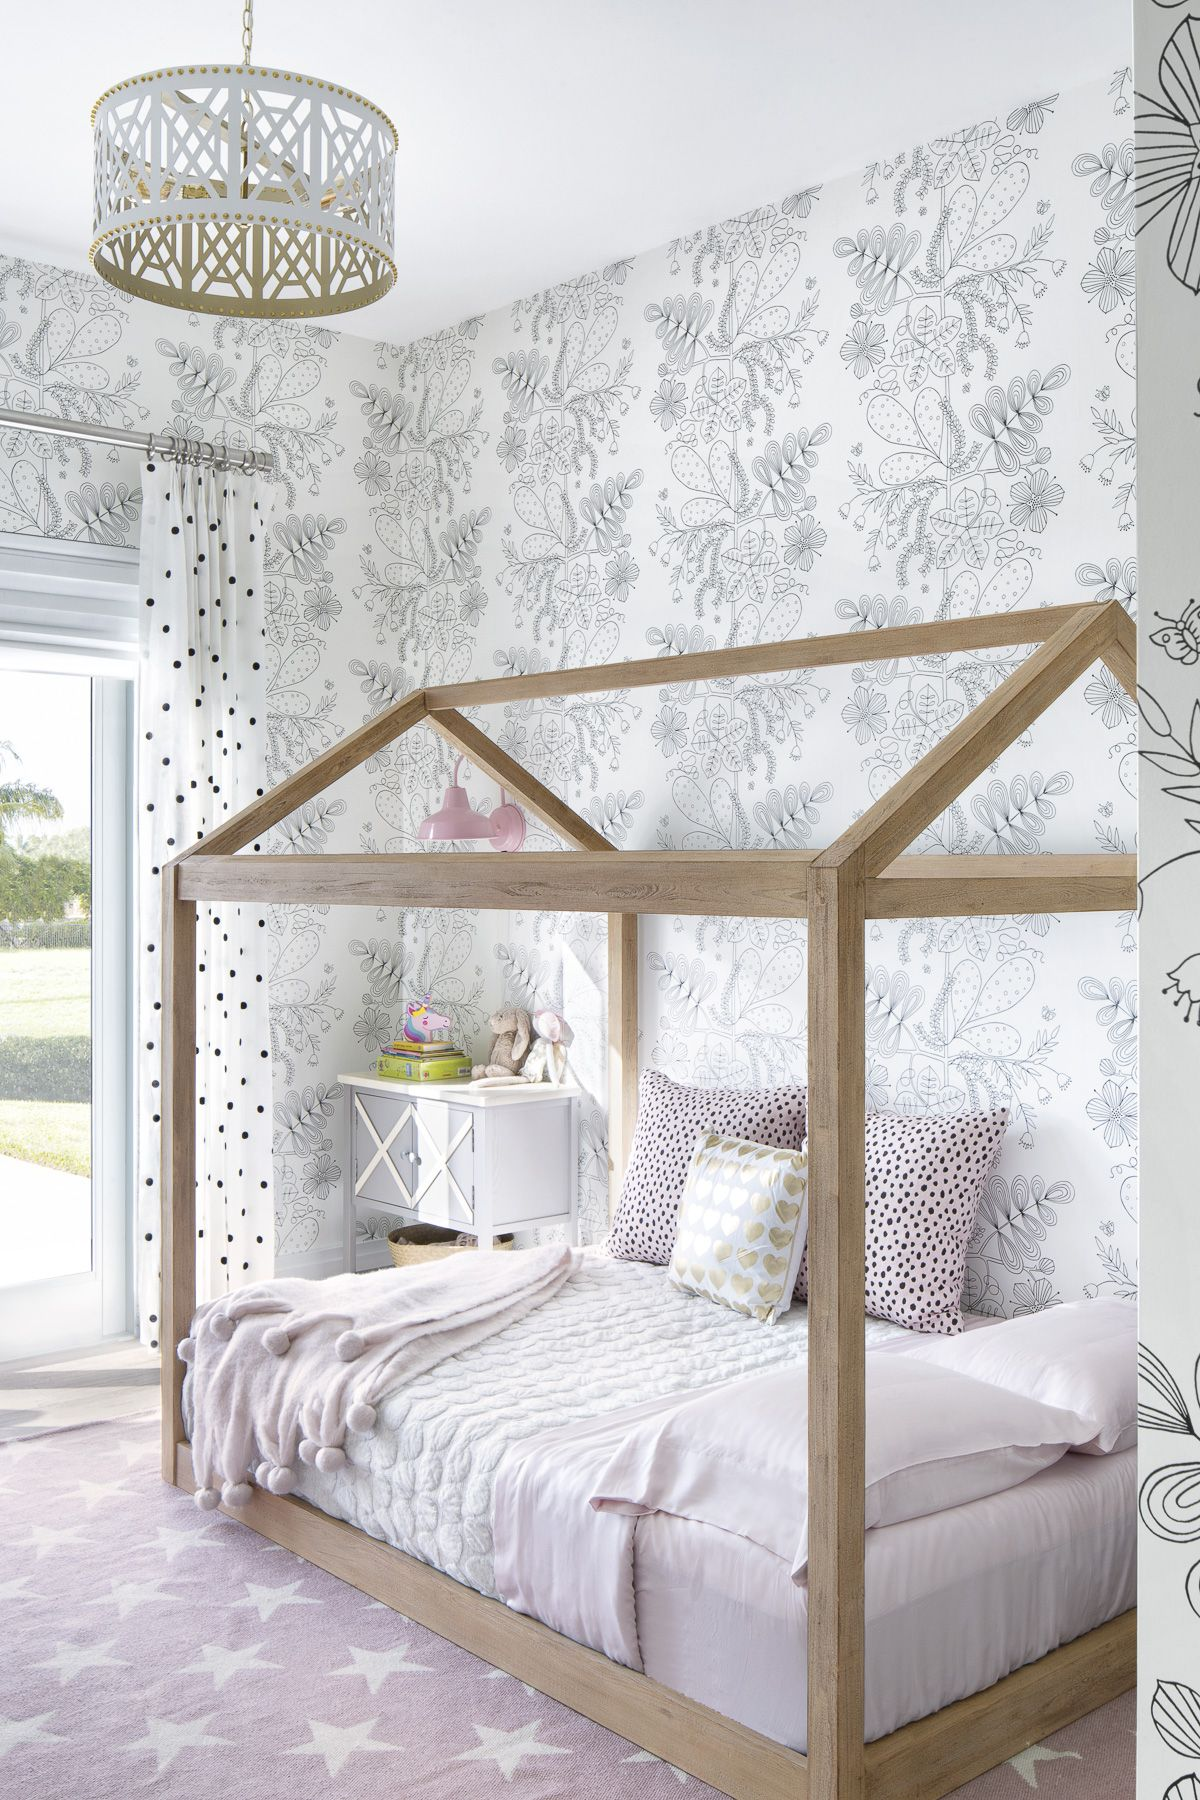 Juno Beach Project With Images House Beds For Kids Beach